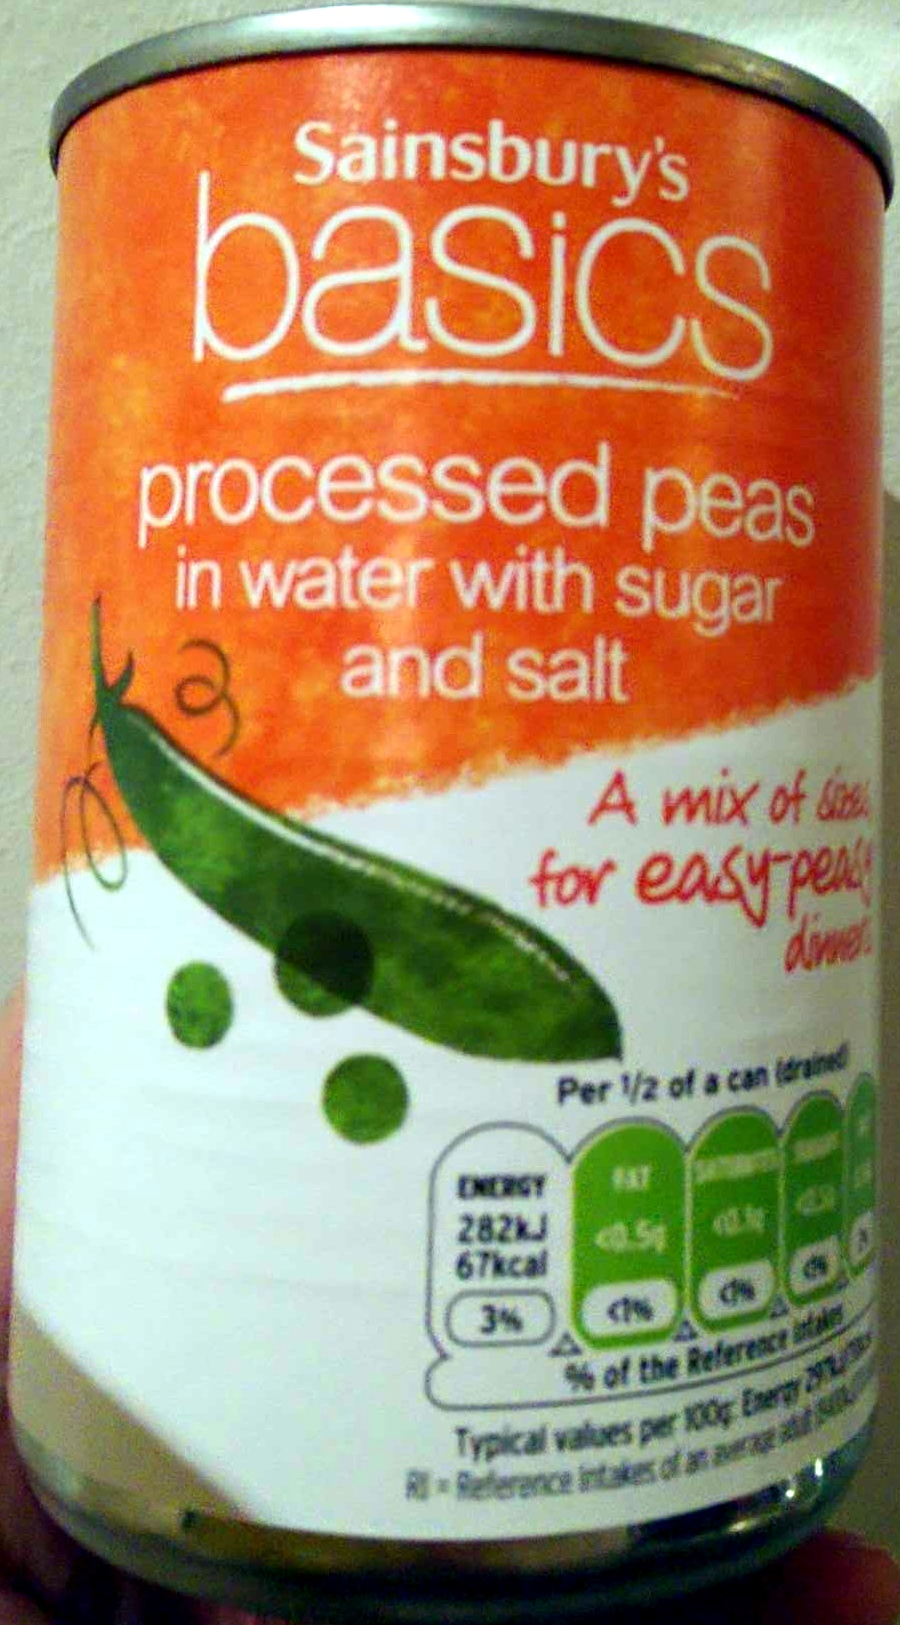 Processed peas in water with sugar and salt - Product - en